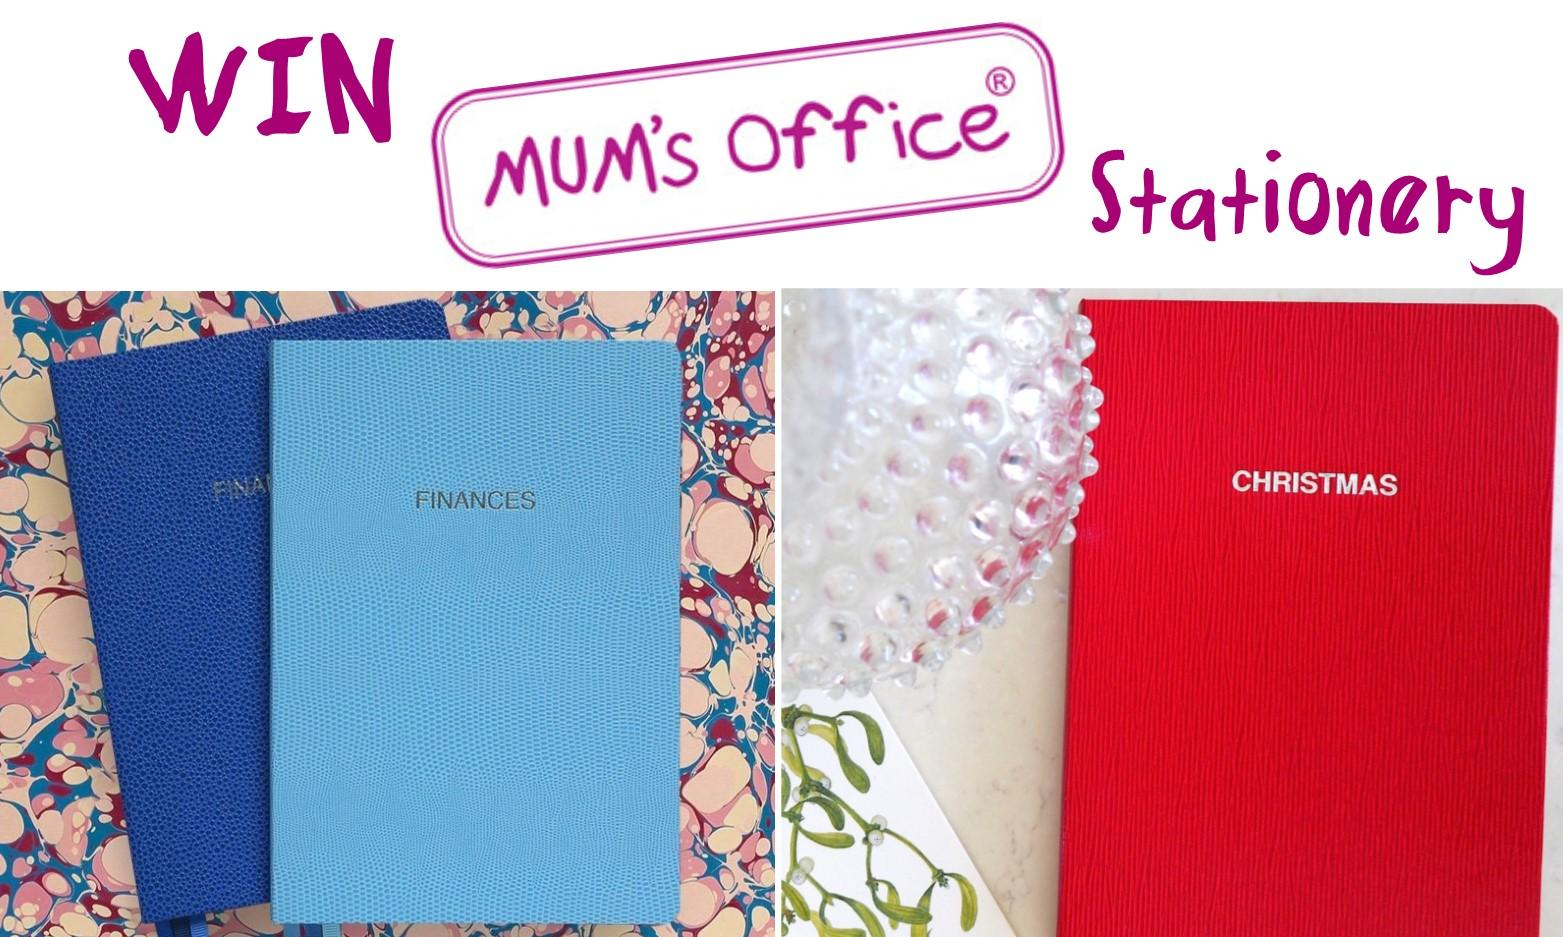 COMPETITION WIN a Mums Office BLOX Financial Diary and a MUMs Christmas Book